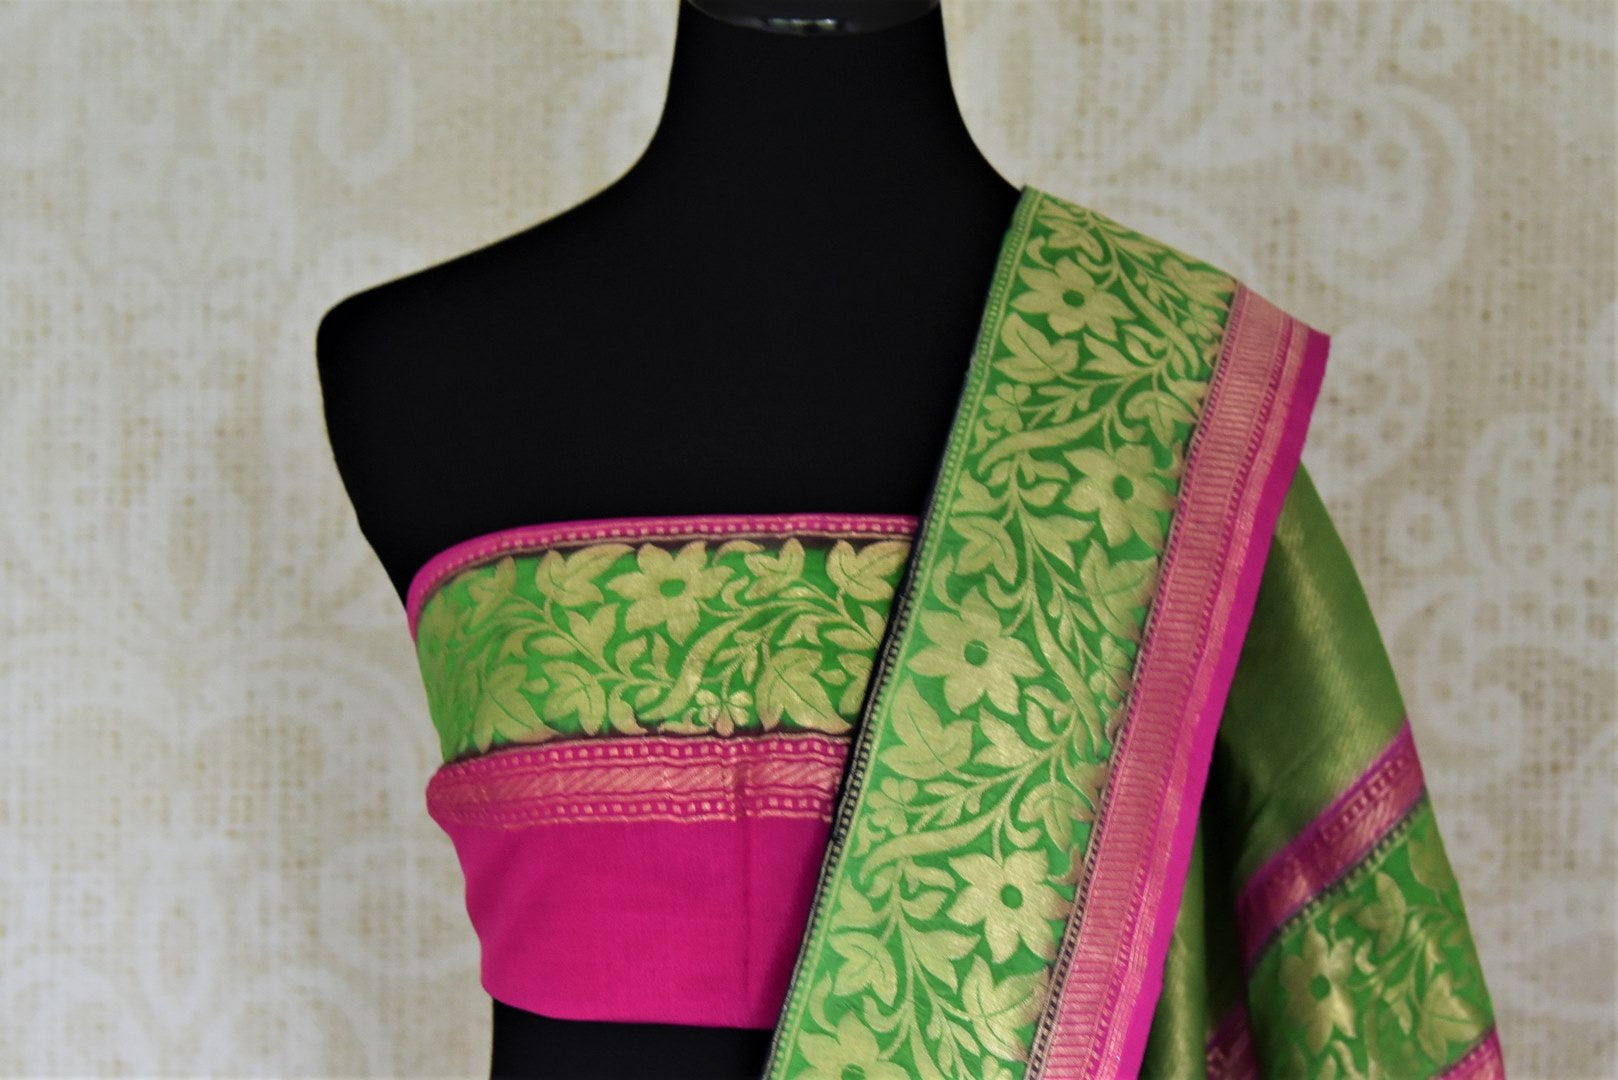 Shop gorgeous black organza Banarasi sari online in USA with green foliate zari border and zari buta. Make your saree wardrobe rich and colorful with stunning handwoven sarees, pure silk sarees, designer sarees from Pure Elegance Indian clothing store in USA.-blouse pallu